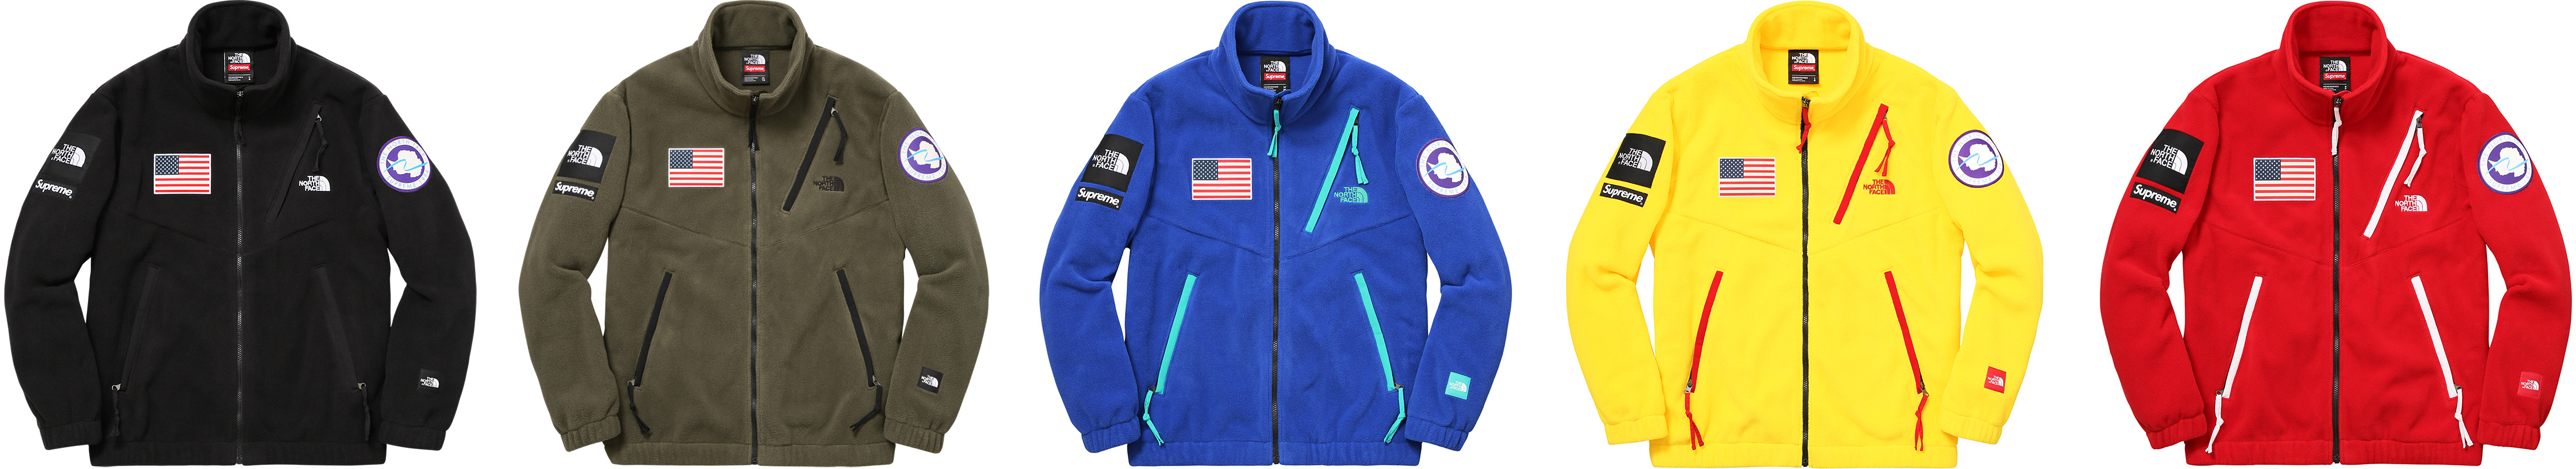 35c698eed WTB: SUPREME THE NORTH FACE FLEECE JACKET ANY COLOR : supremeclothing